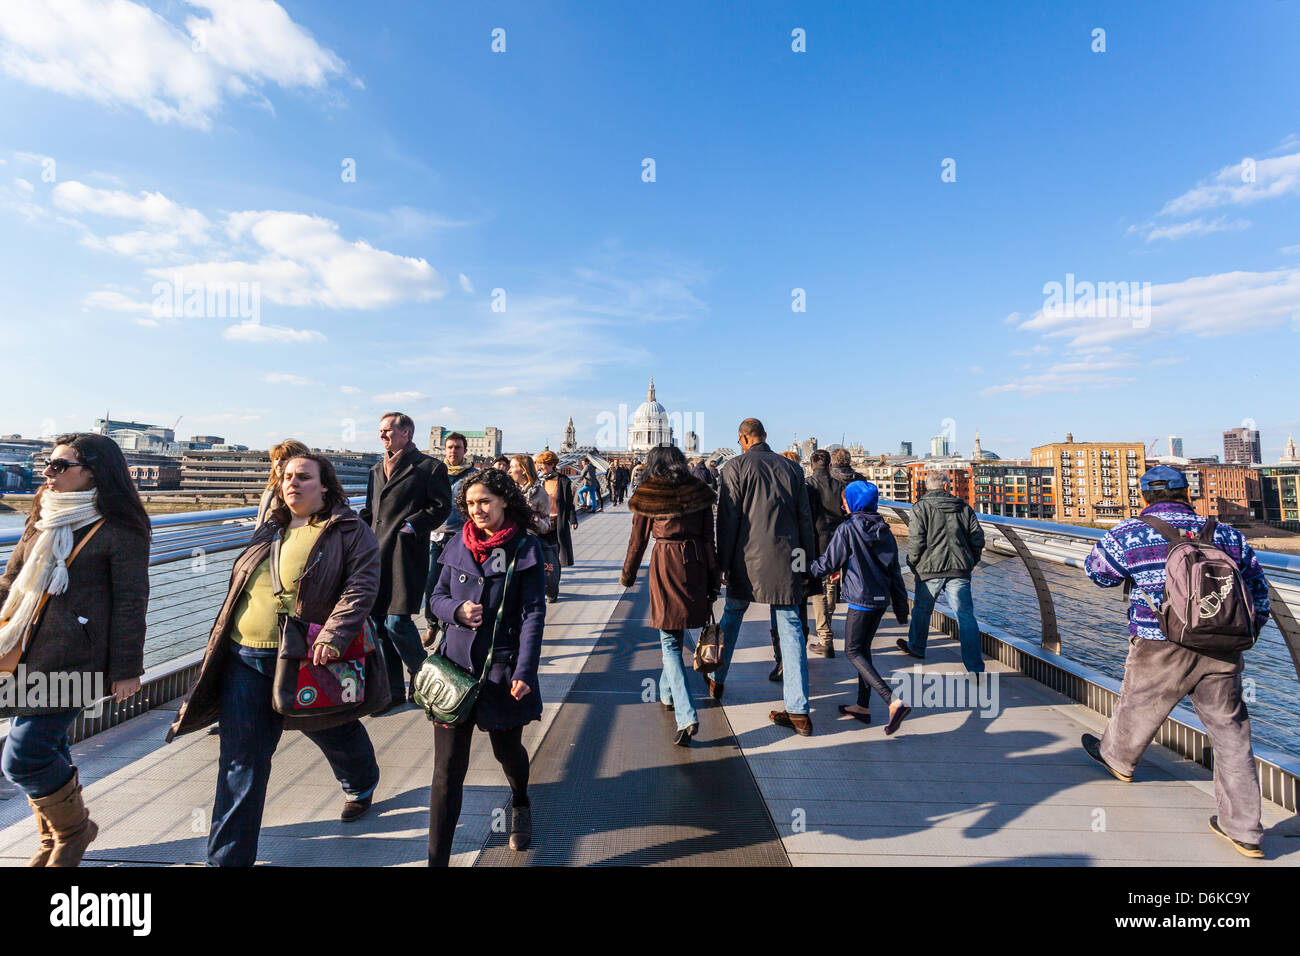 Les piétons traversant Millennium Bridge, London, England, UK Photo Stock